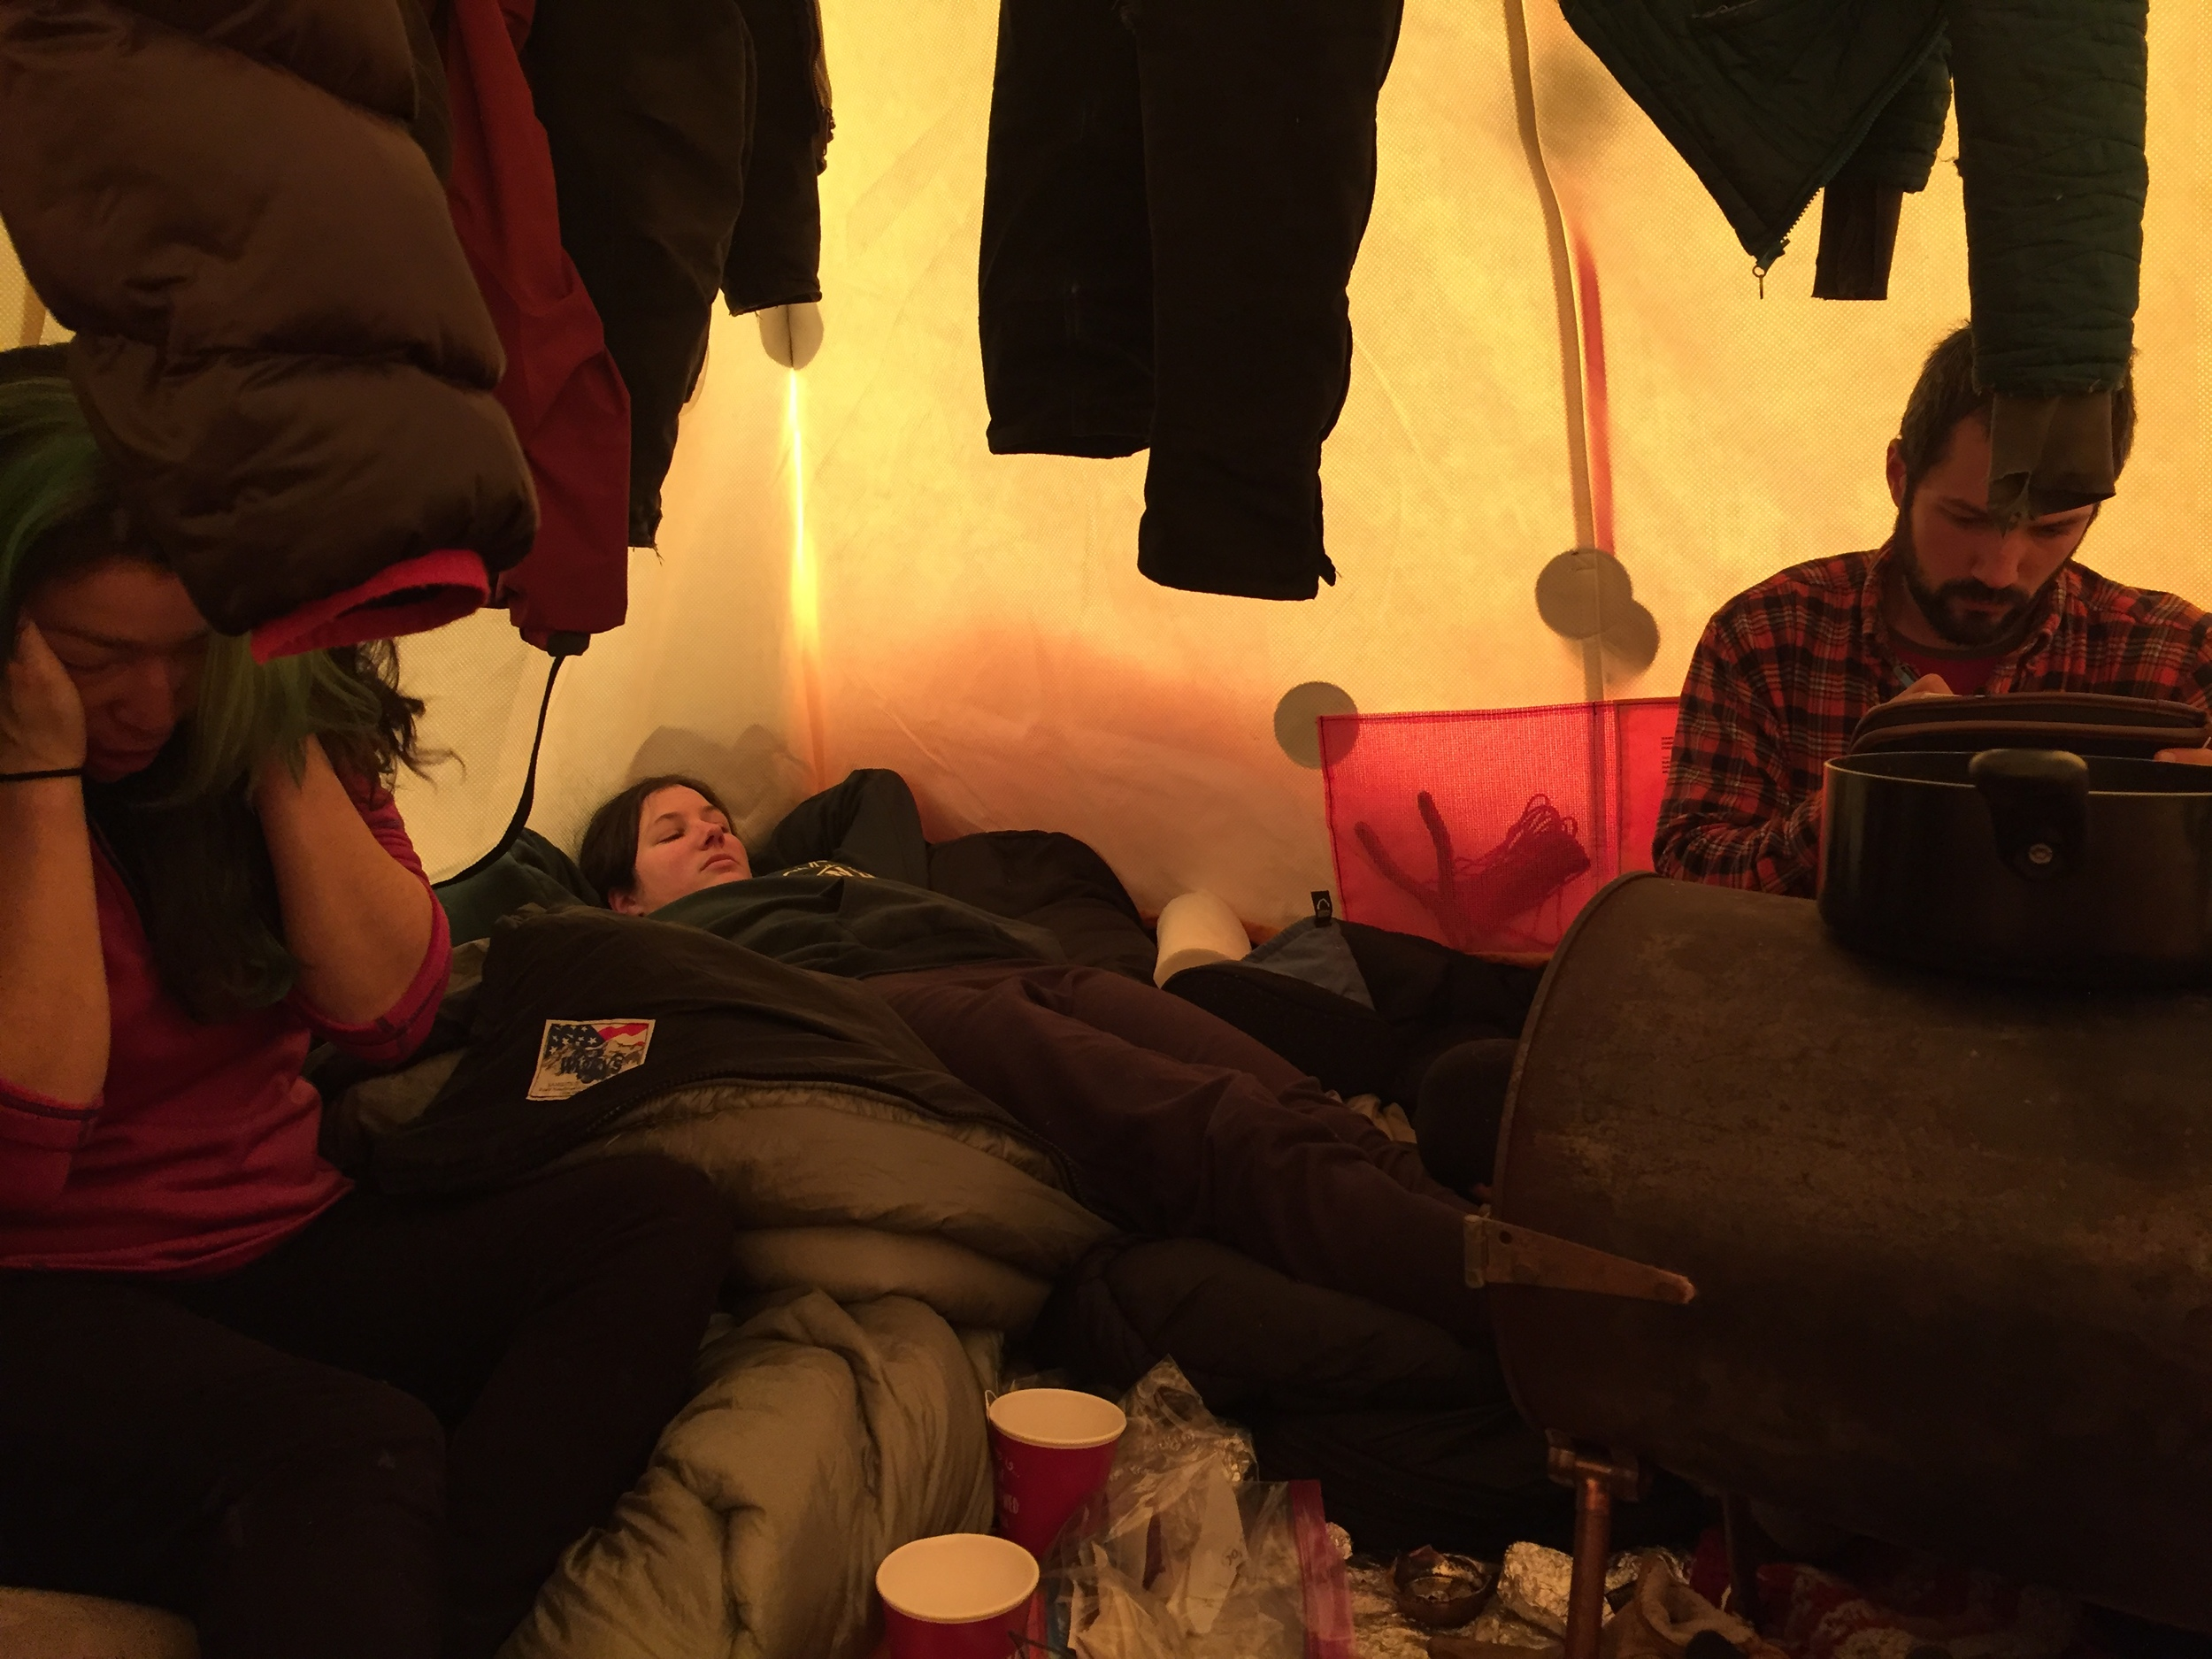 Ryne and Nick relaxing in the tent.